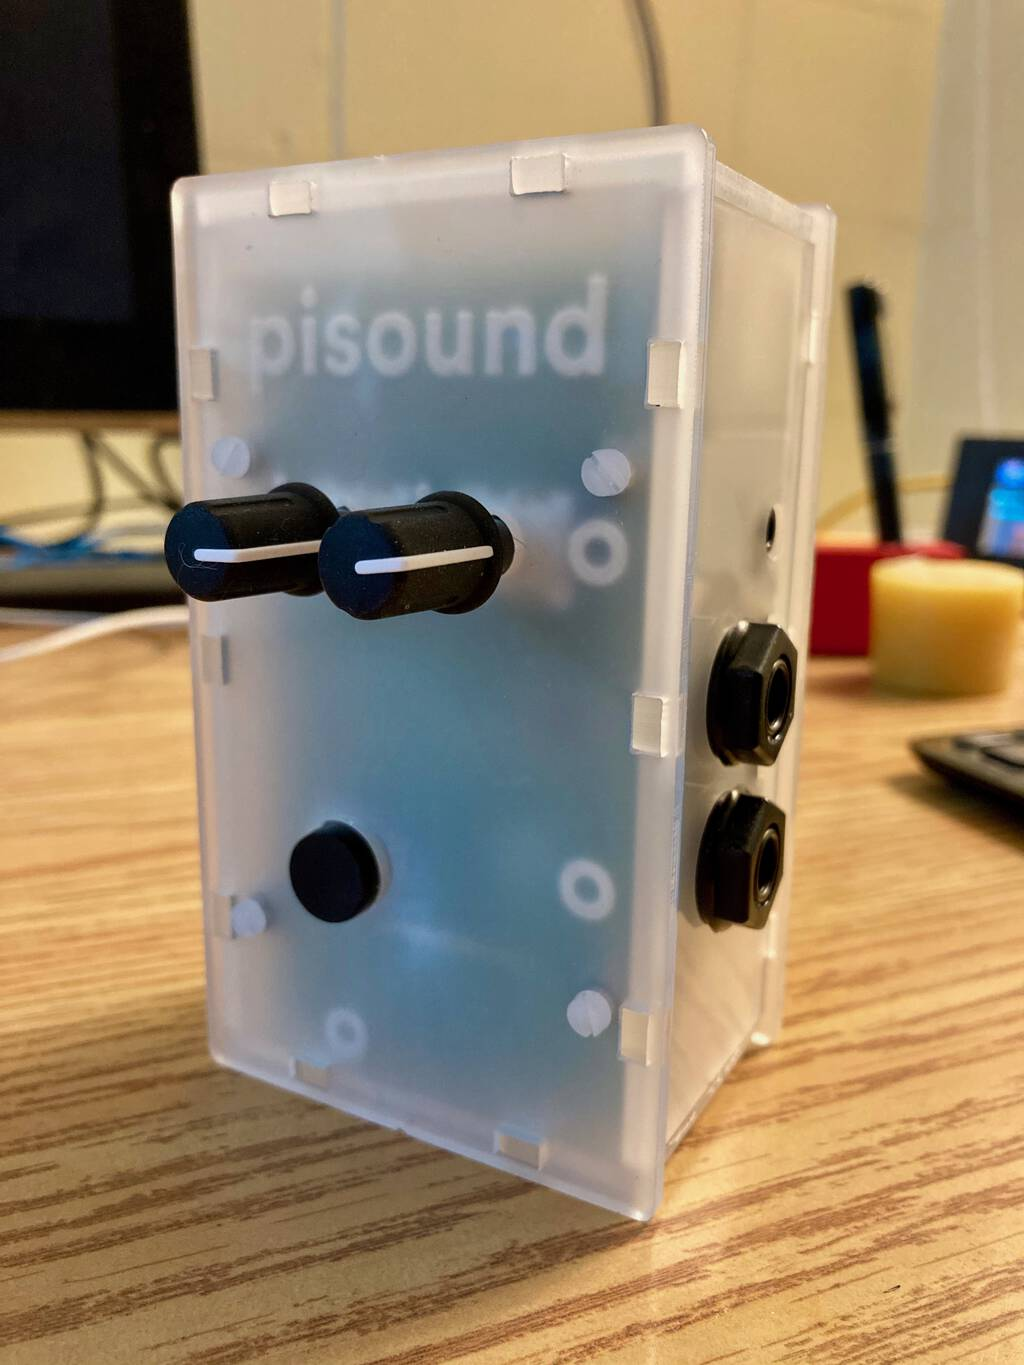 Photo of assembled PiSound case with Raspberry Pi 4